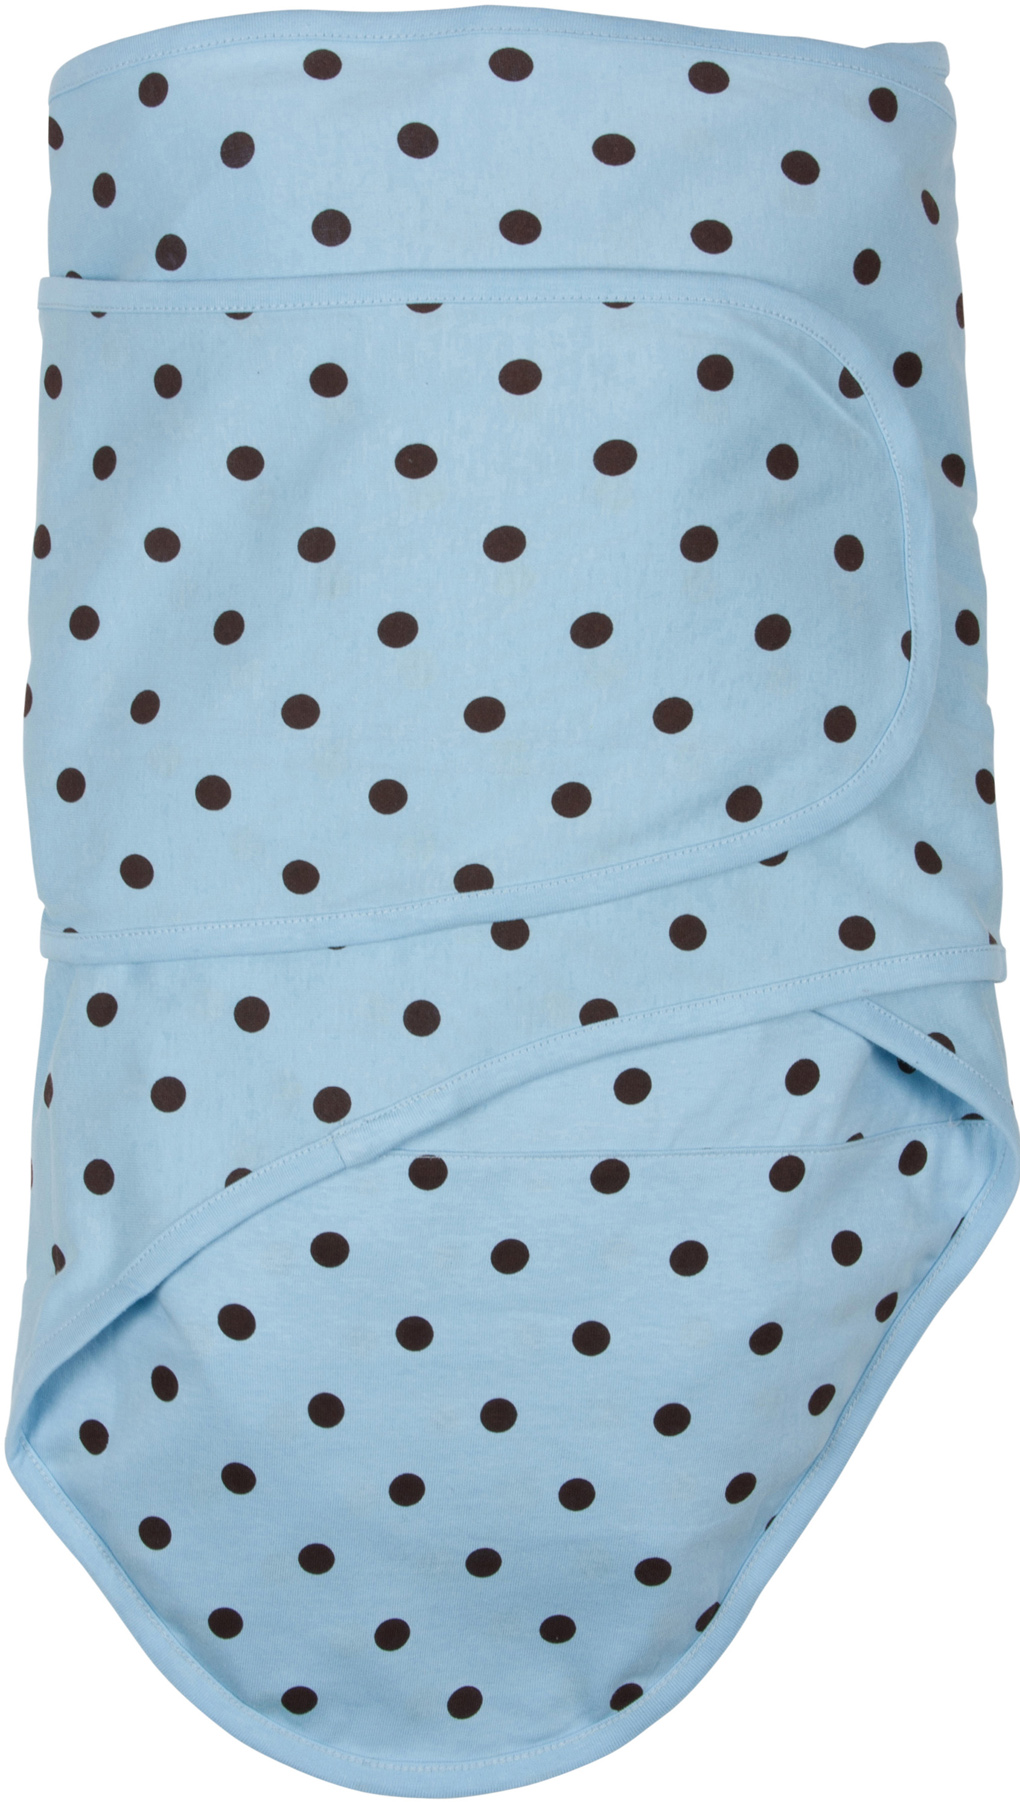 Miracle Blanket®: Blue with Brown Polka Dots